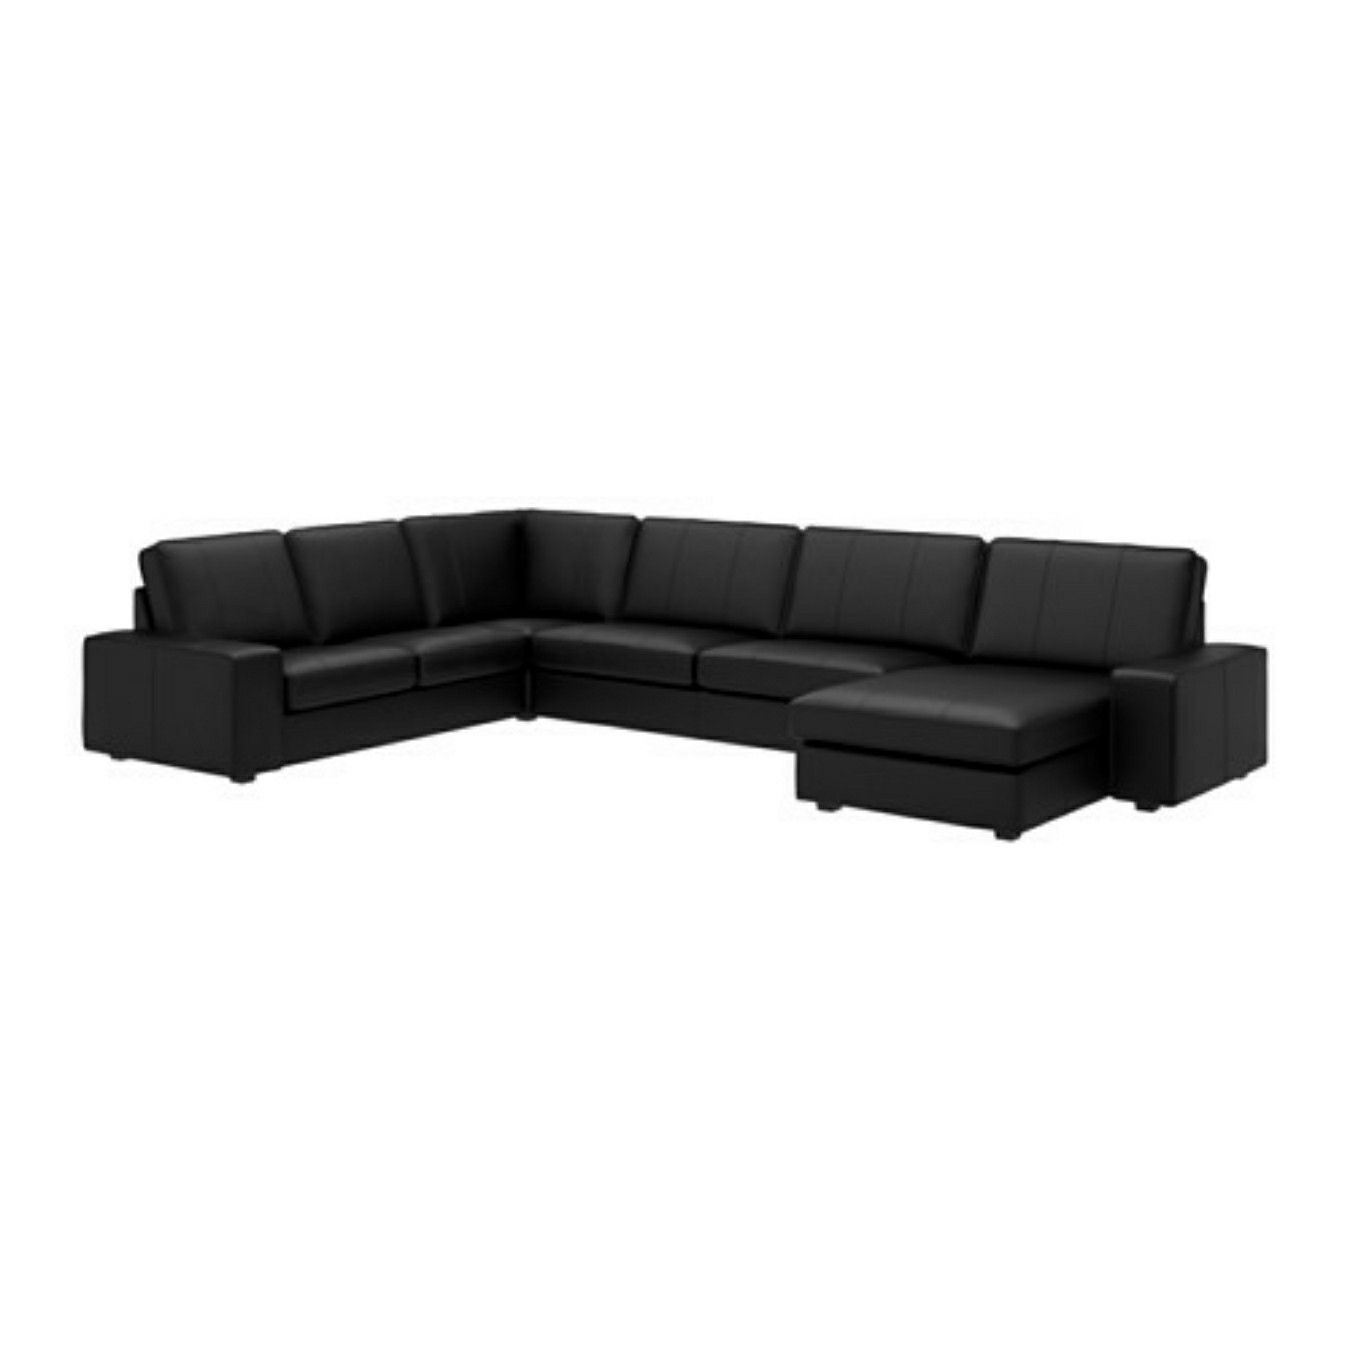 Leather Sofas Traditional Contemporary Ikea Black Leather Contemporary Sofa Karlstad Sofa Living Room Furniture Sofas